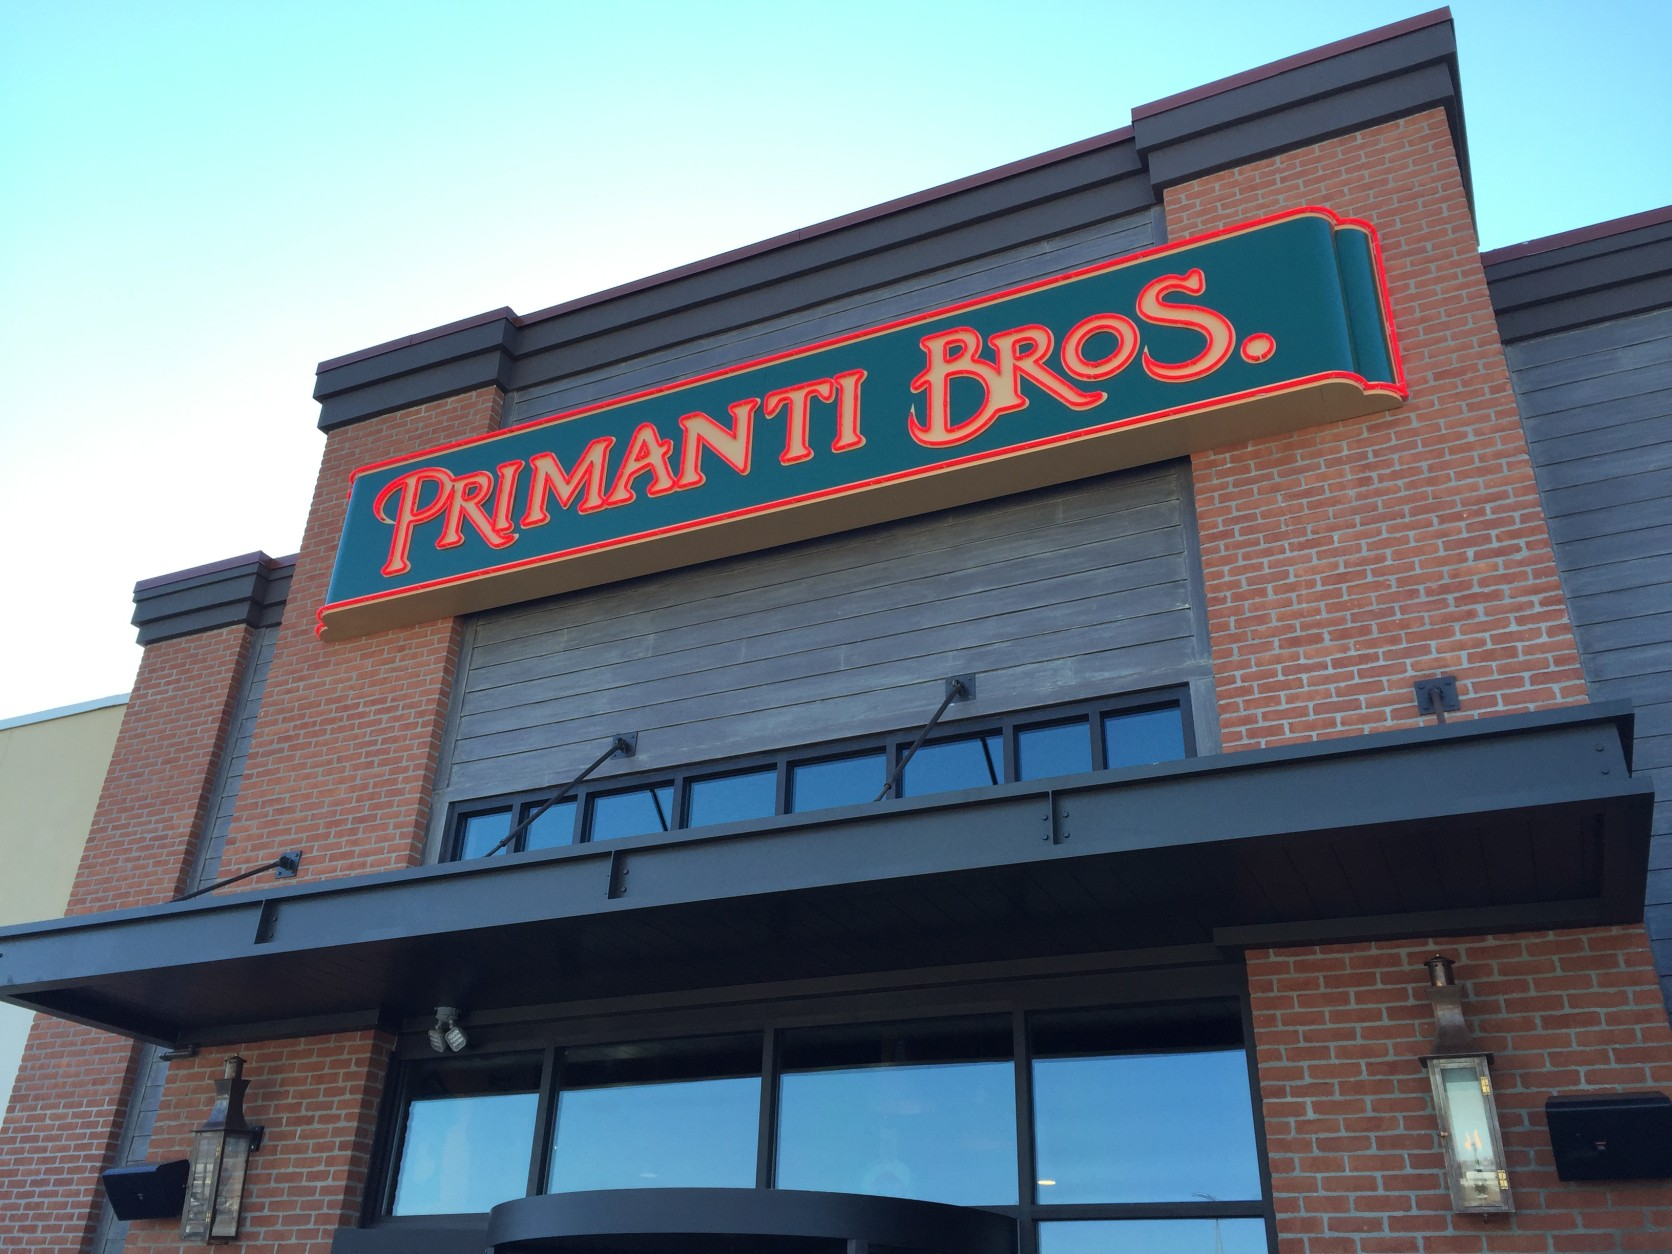 Primanti Bros., a Pittsburgh favorite, just opened its first restaurant location in Maryland at Valley Mall in Hagerstown. (WTOP/Michelle Basch)